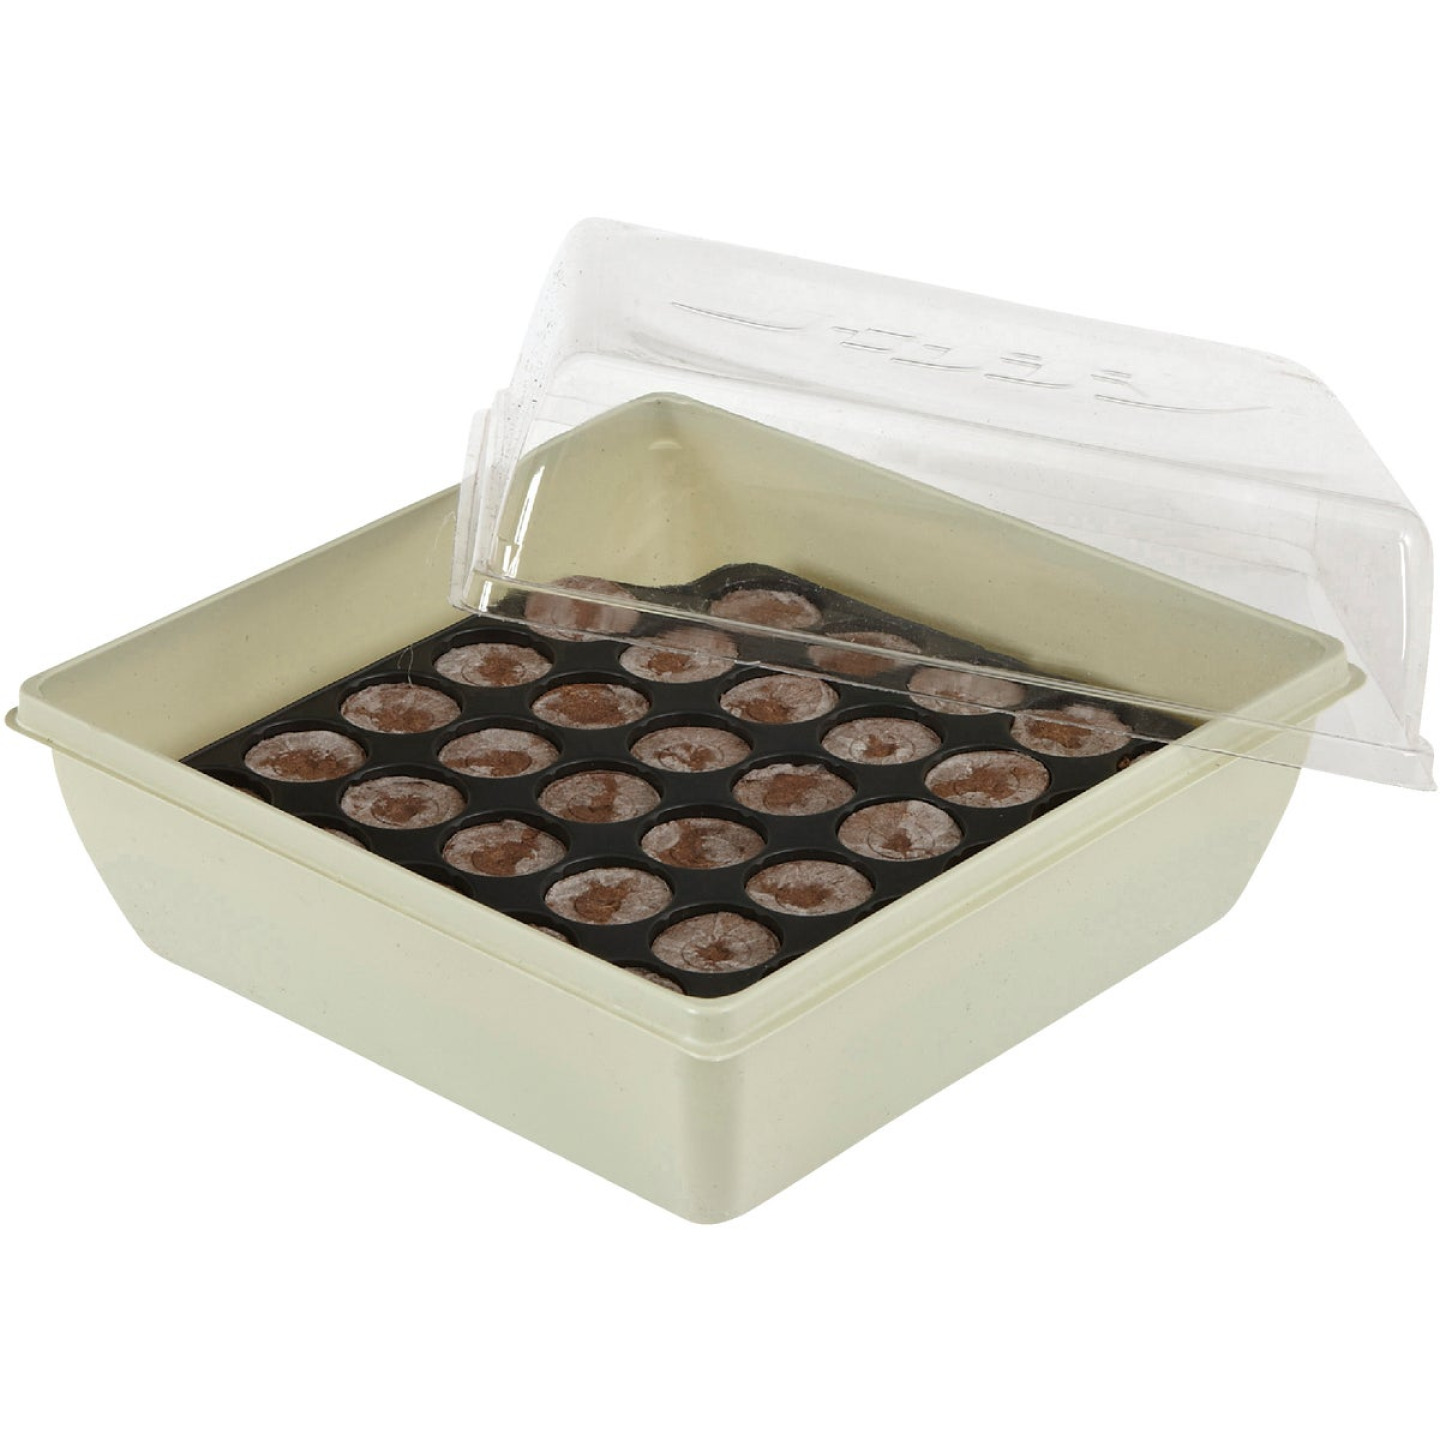 Jiffy 34-Cell 11 In. x 11 In. Self Watering Greenhouse Seed Starter Kit Image 4